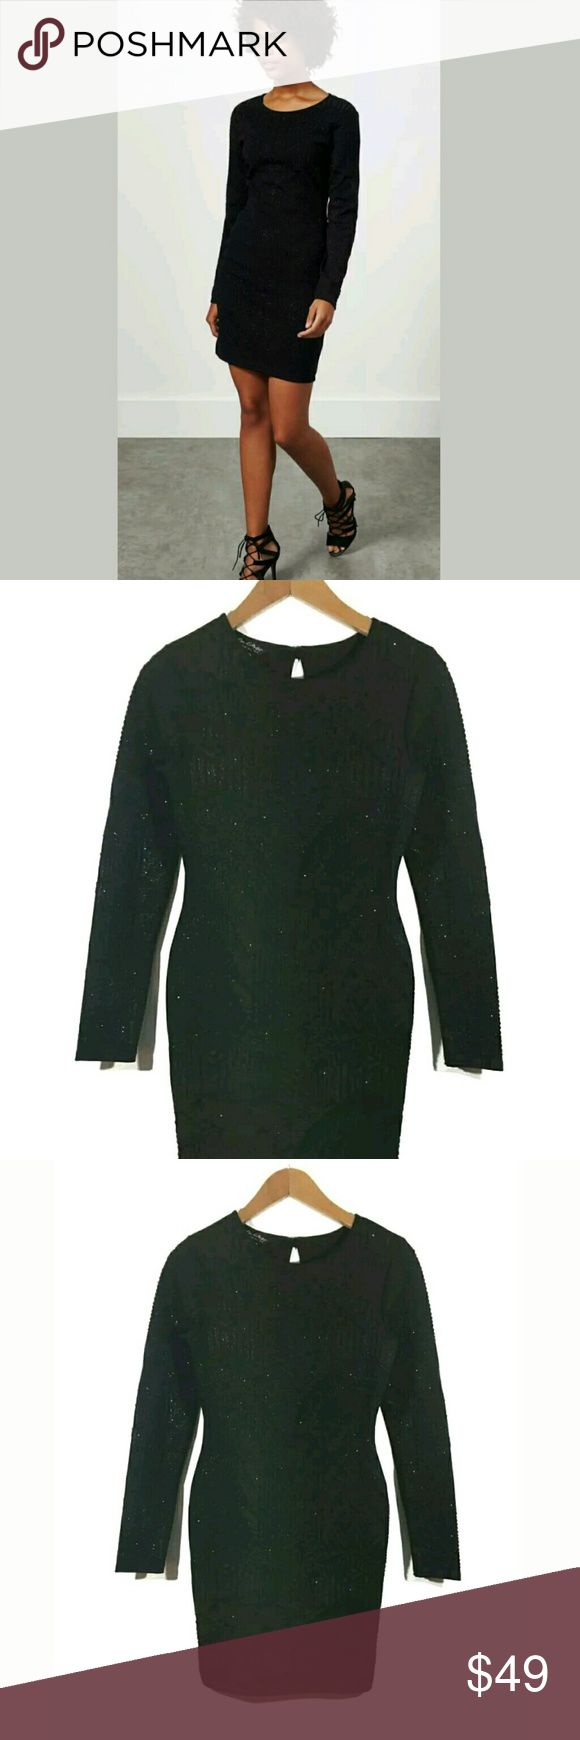 Miss Selfridge Dress SZ 6 Long Sleeve Caviar Bea Miss Selfridge Dress Size 6 Long Sleeve Caviar Beaded Stretch Bodycon Black   Excellent used condition.   15.5 inches pit to pit.  26 inch waist.  32 inch hips.  35 inches long.   Pre-owned item condition. Item has little to no signs of wear unless specifically stated. Please carefully review item details and uploaded pictures for details of this item before bidding or buying. Item is functional and ready for your closet!    LB Miss Selfridge…